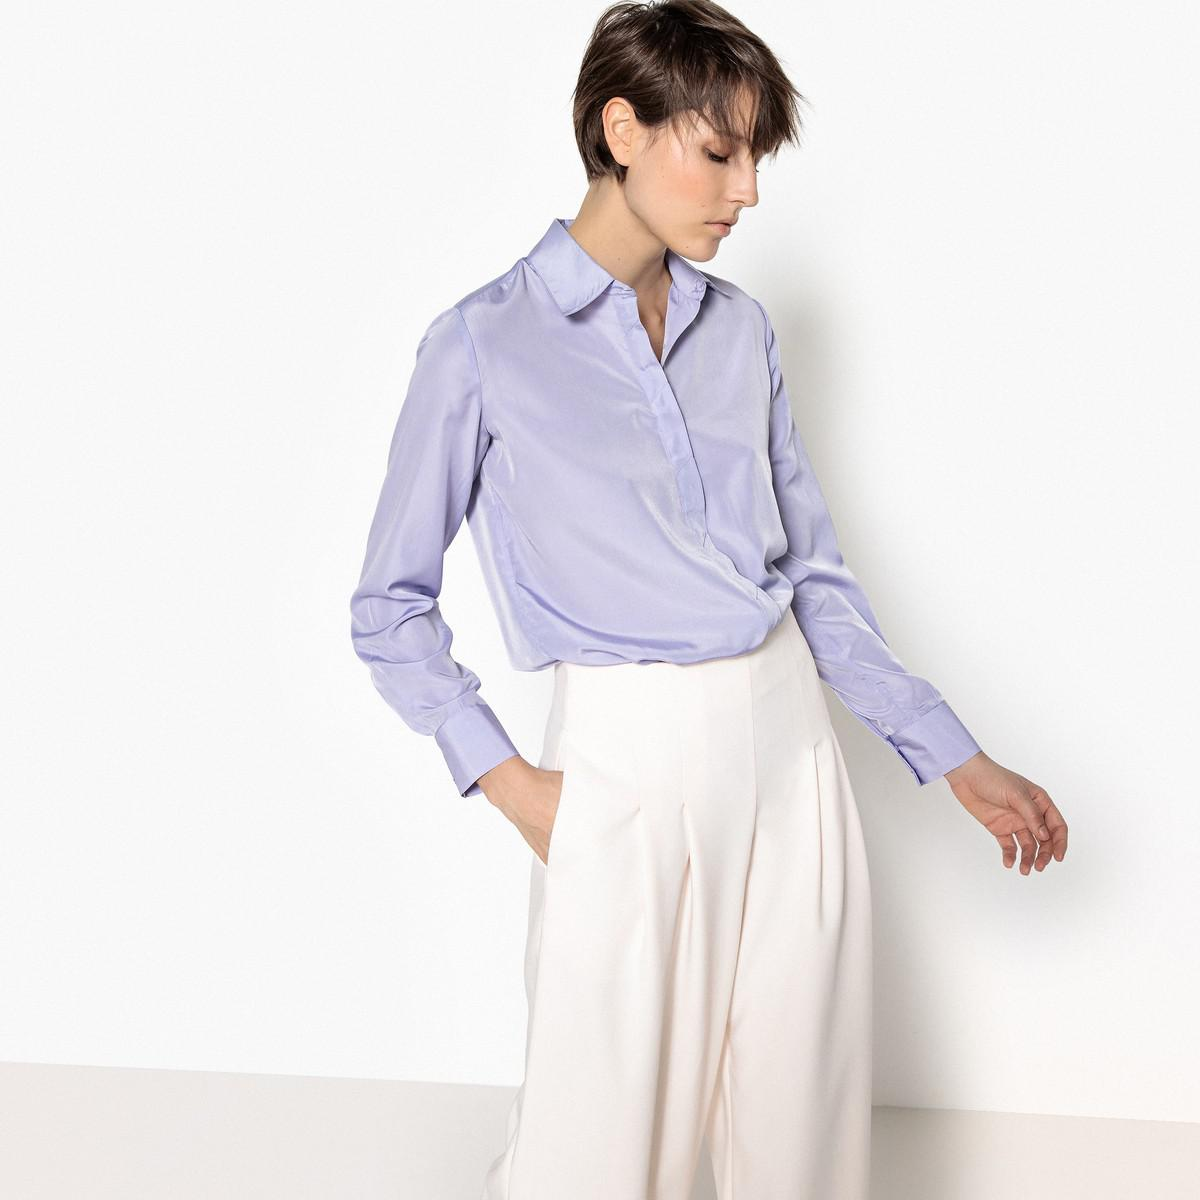 408f50bcad Lyst - La Redoute Satin Look Shirt With Concealed Buttoned Placket ...